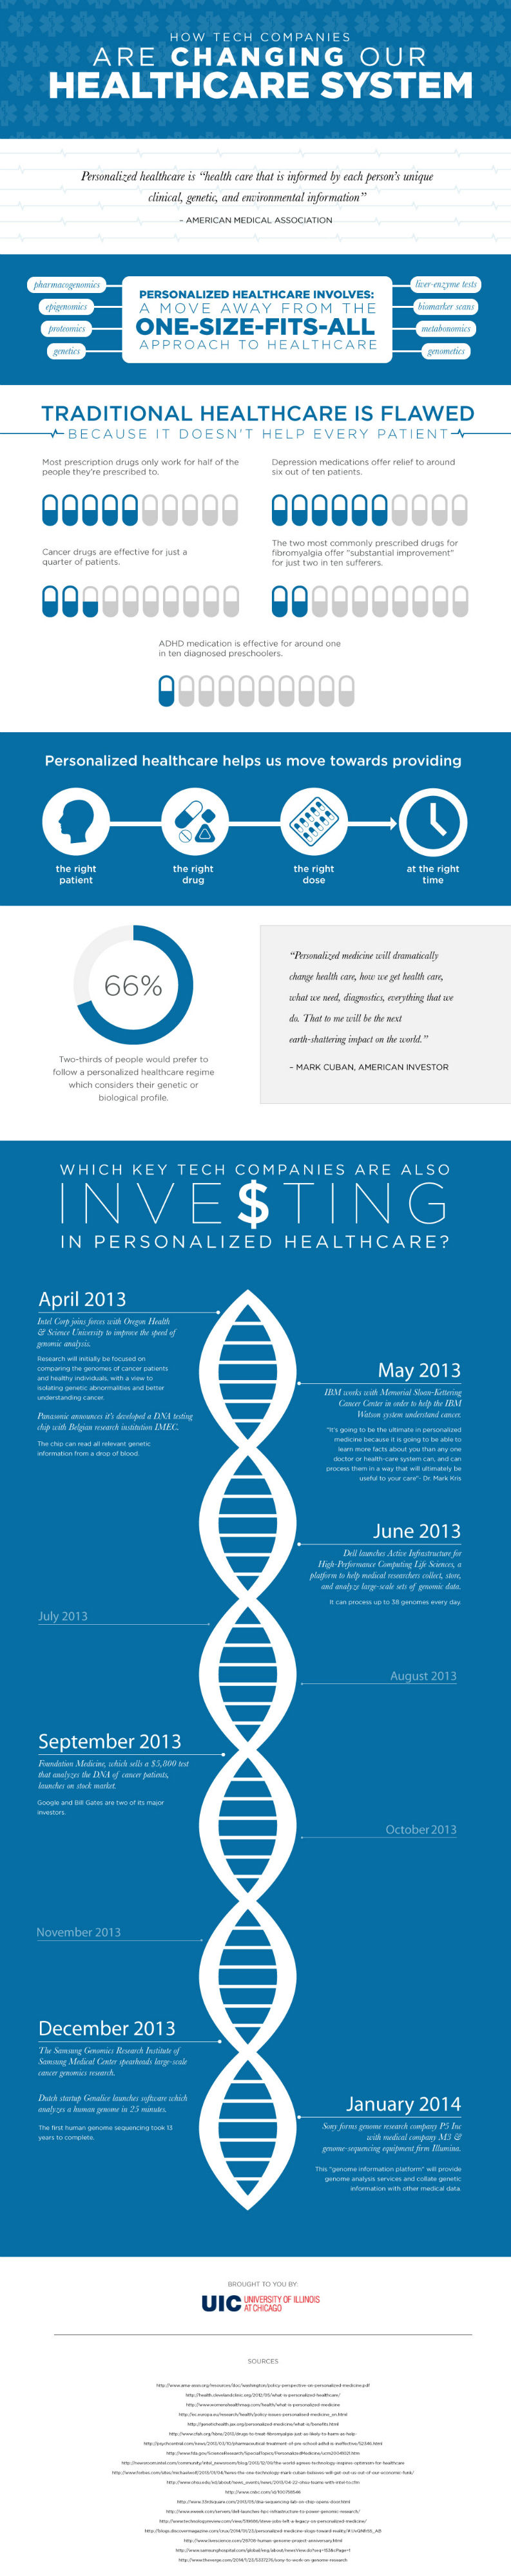 How Tech Companies Are Changing Our Healthcare System [Infographic]